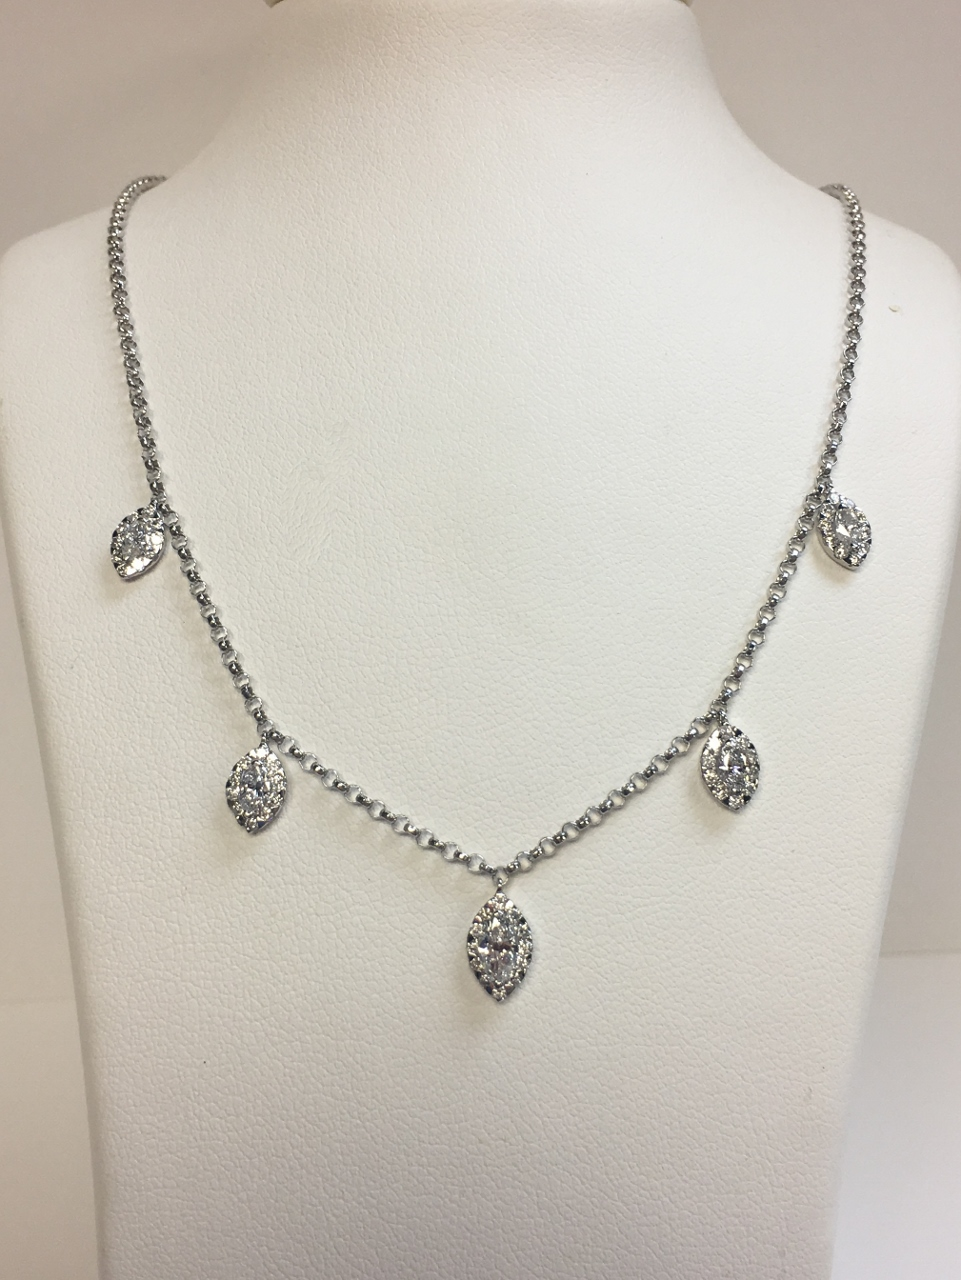 1 Carat Total Weight Station Diamond Necklace